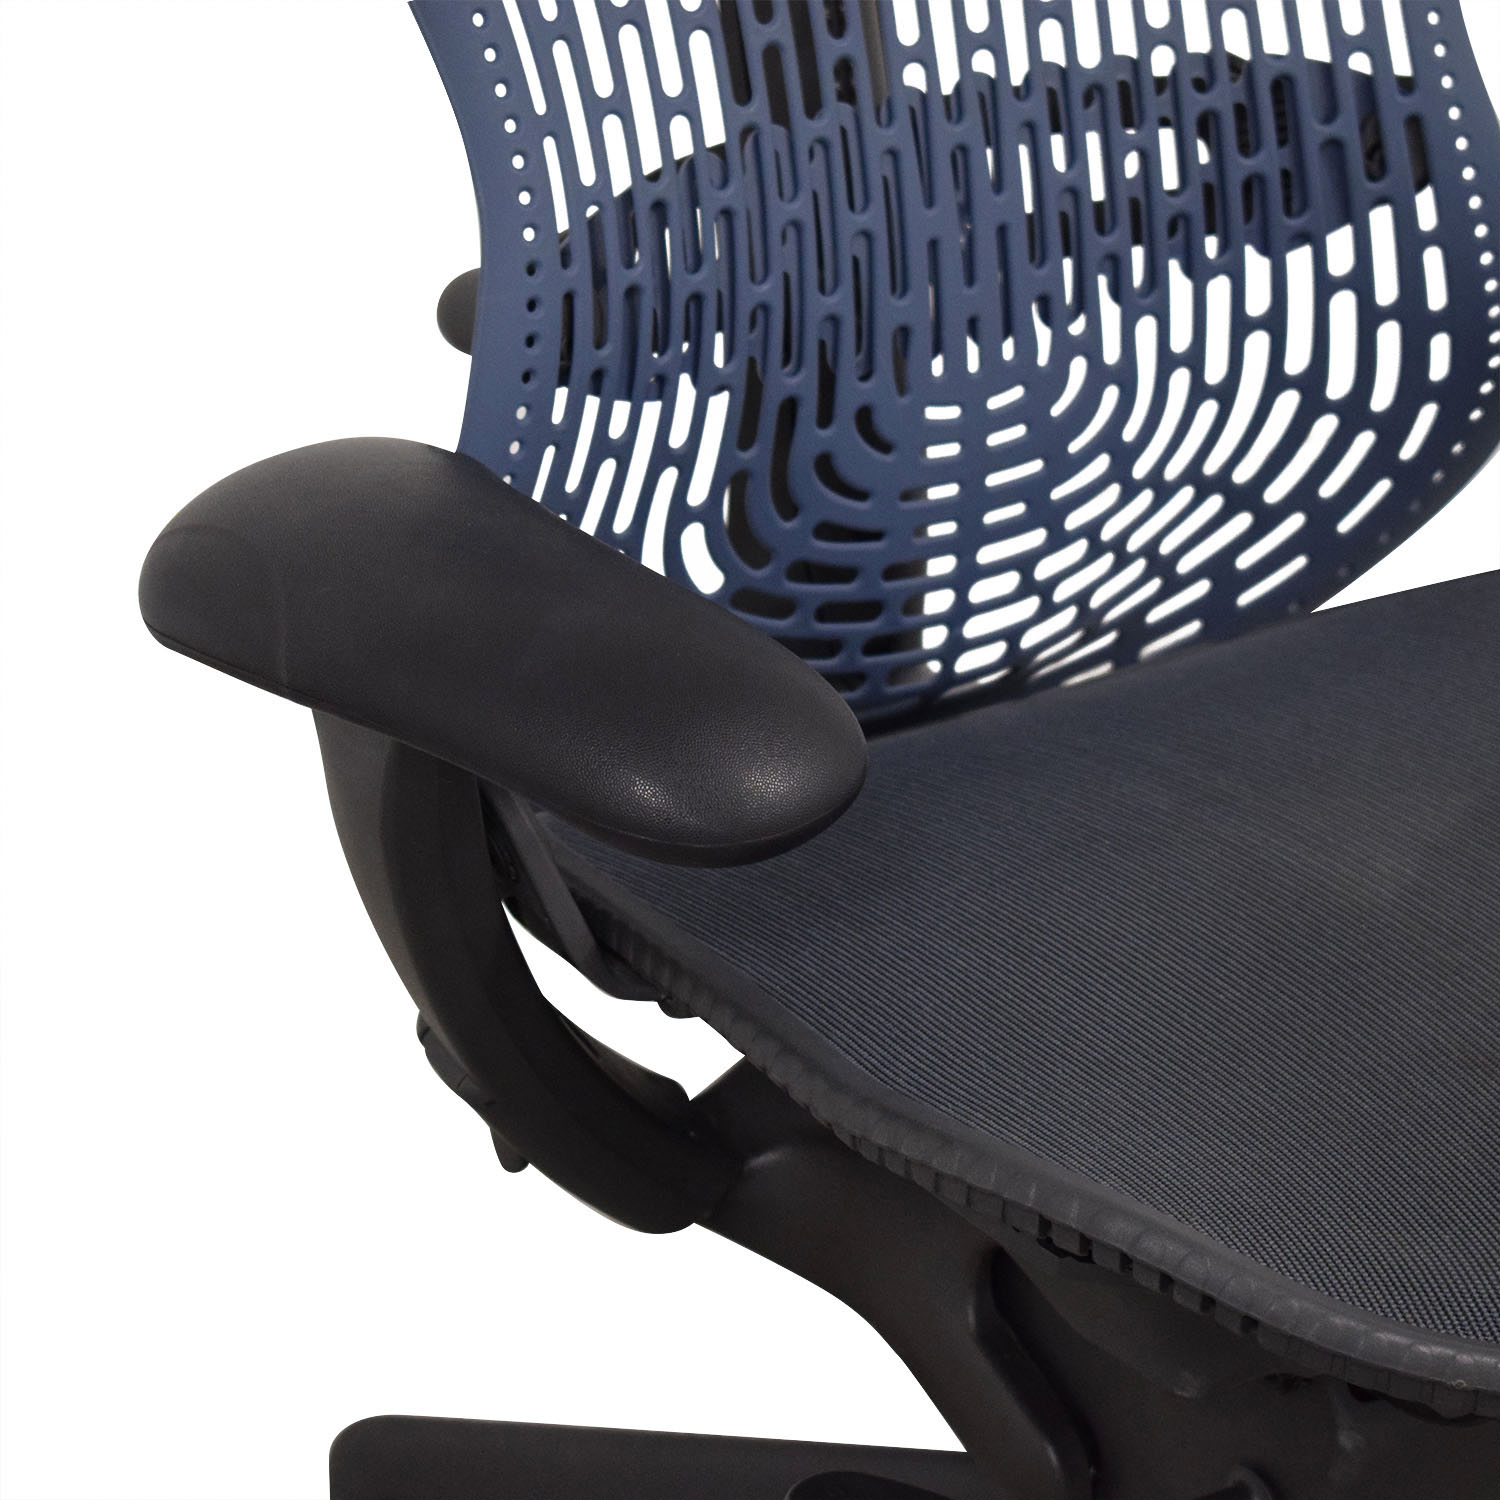 Herman Miller Herman Miller Aeron Office Chair coupon